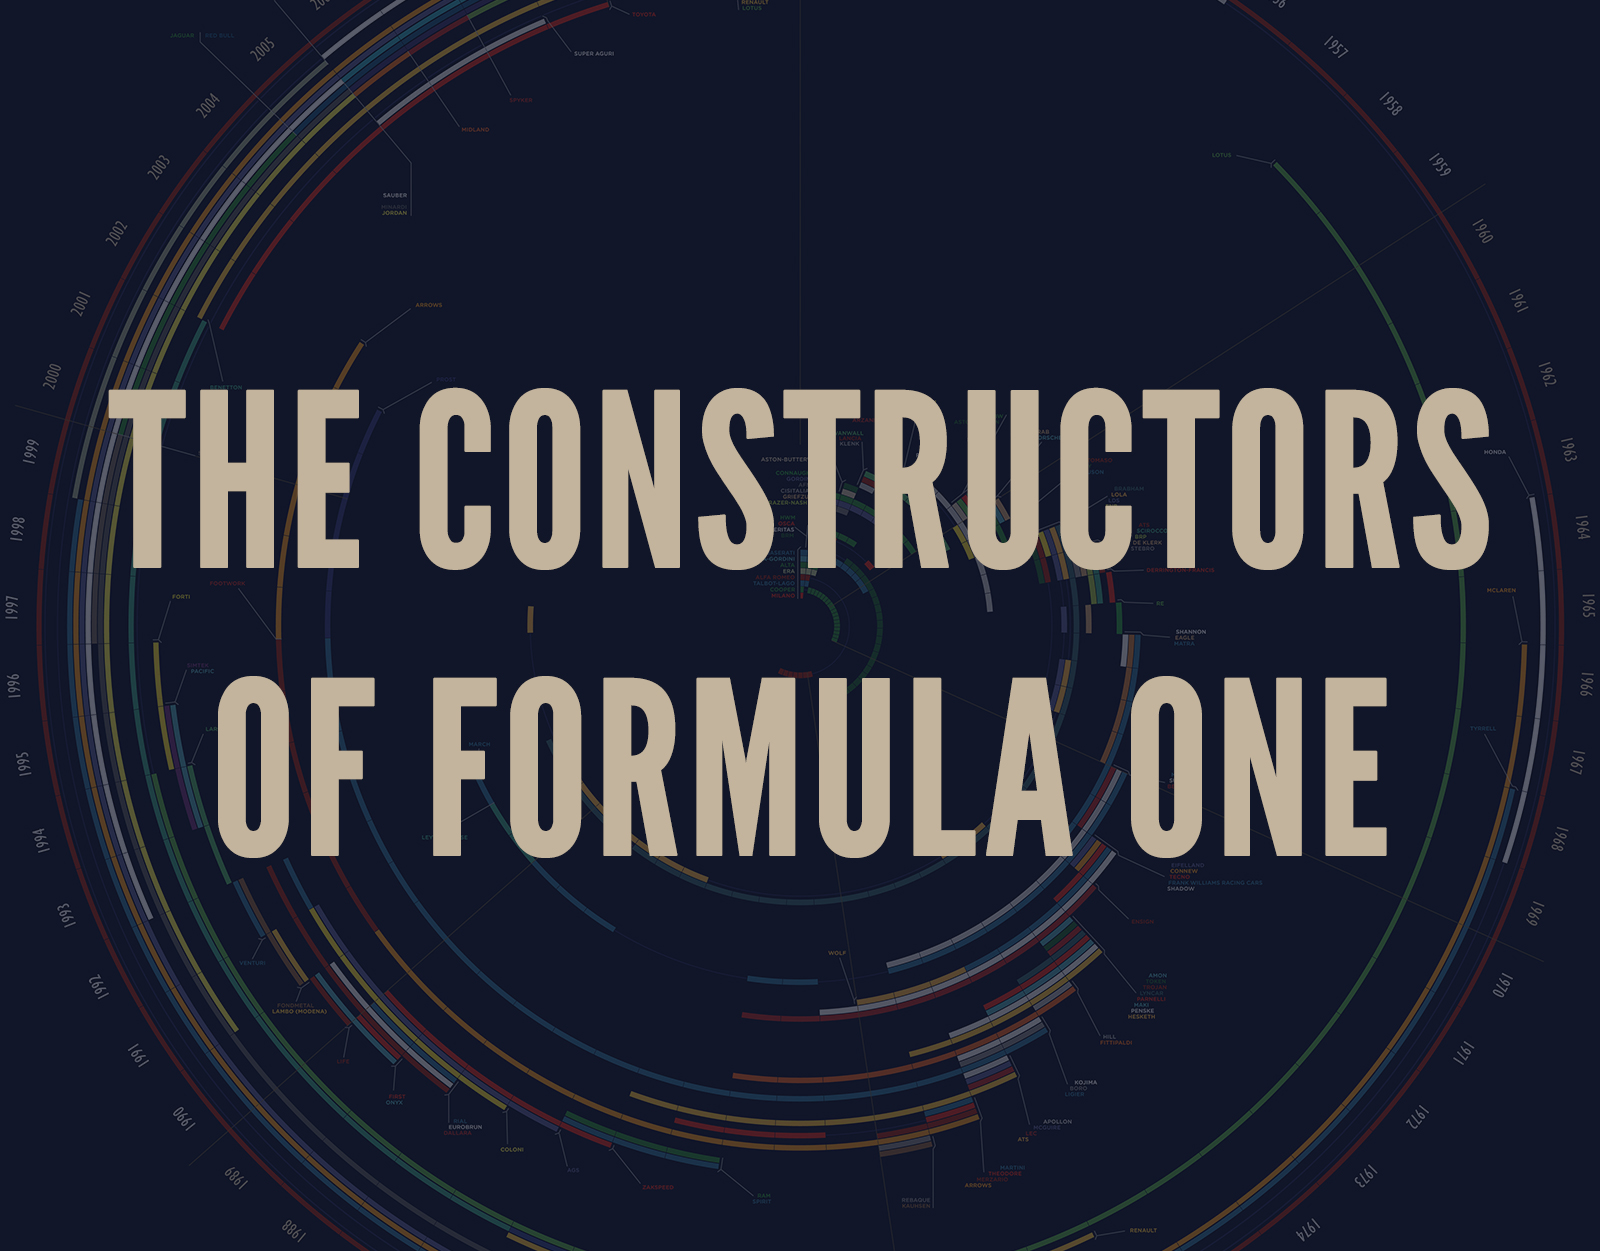 The Constructors of Formula One